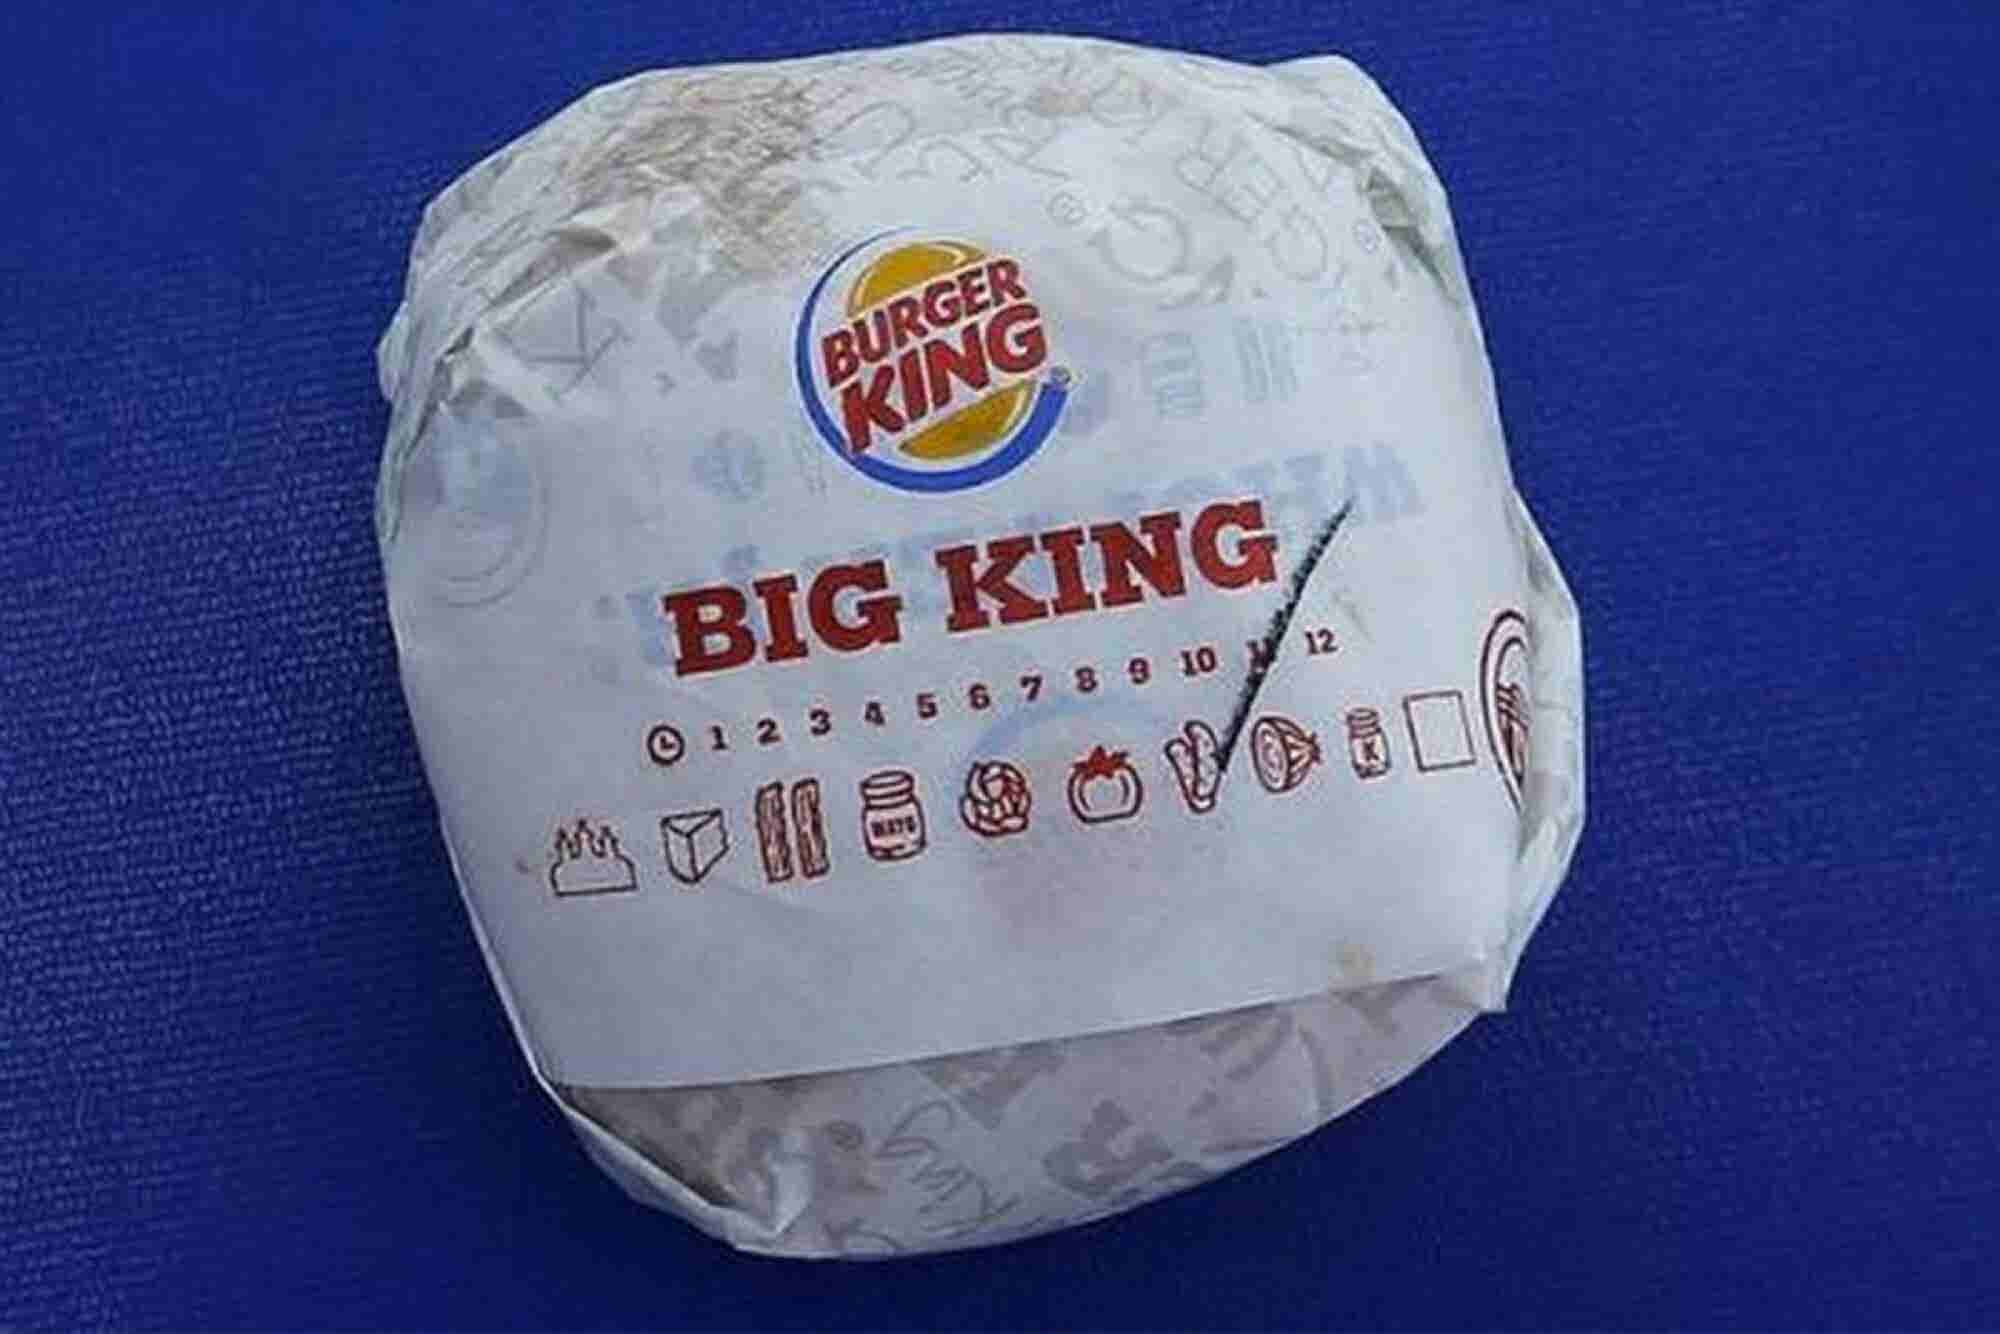 Canada Sees Burger King/Tim Hortons Decision Before Christmas